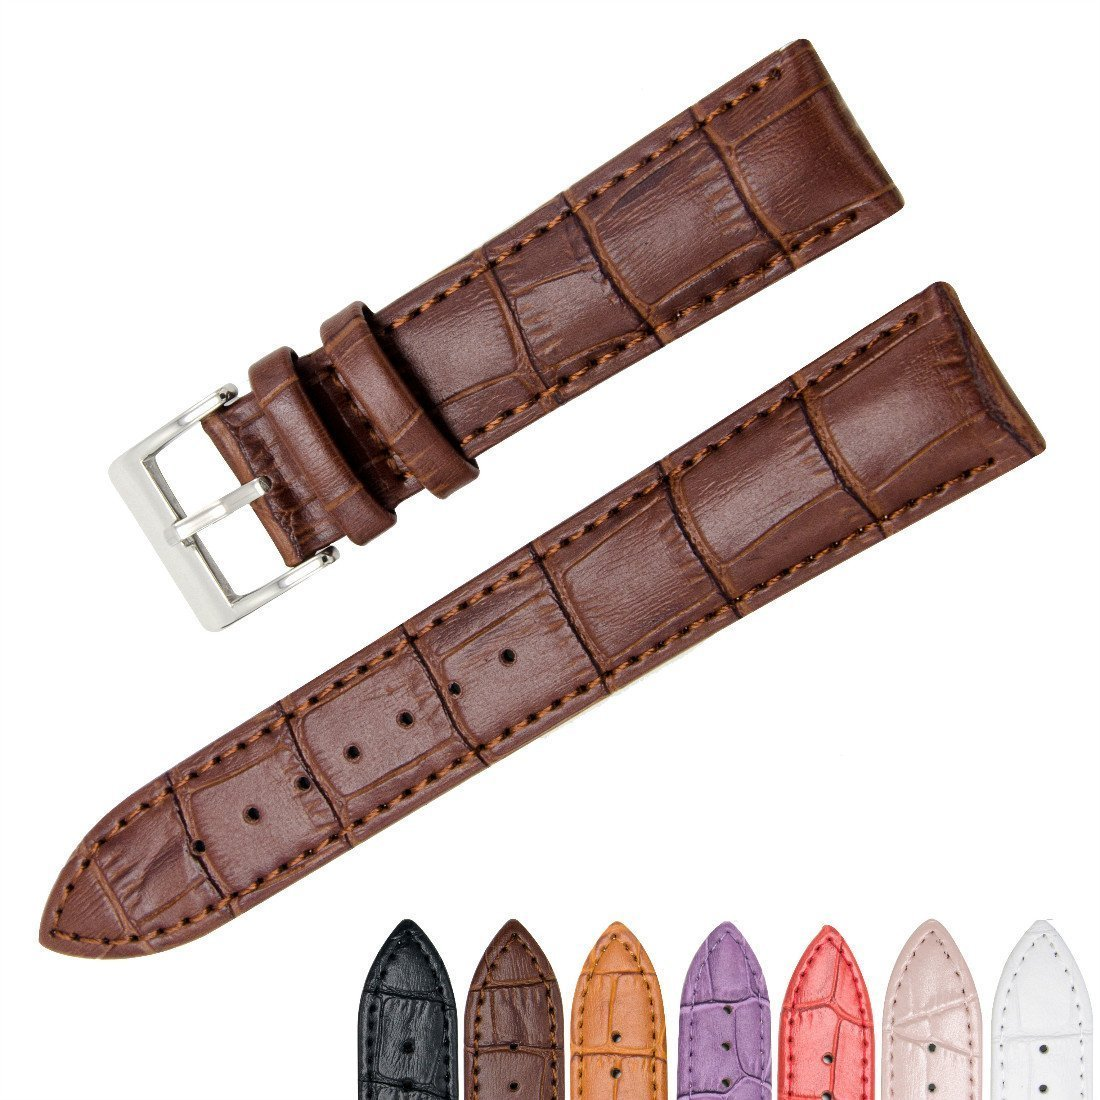 CeLover Watch Band Watch Replacement Watch Strap Genuine Leather 18mm Watchbands Metal Stainless Steel Adapter Quick Release Watchband with Pins Clasp, Width(18mm 20mm 22mm) Black